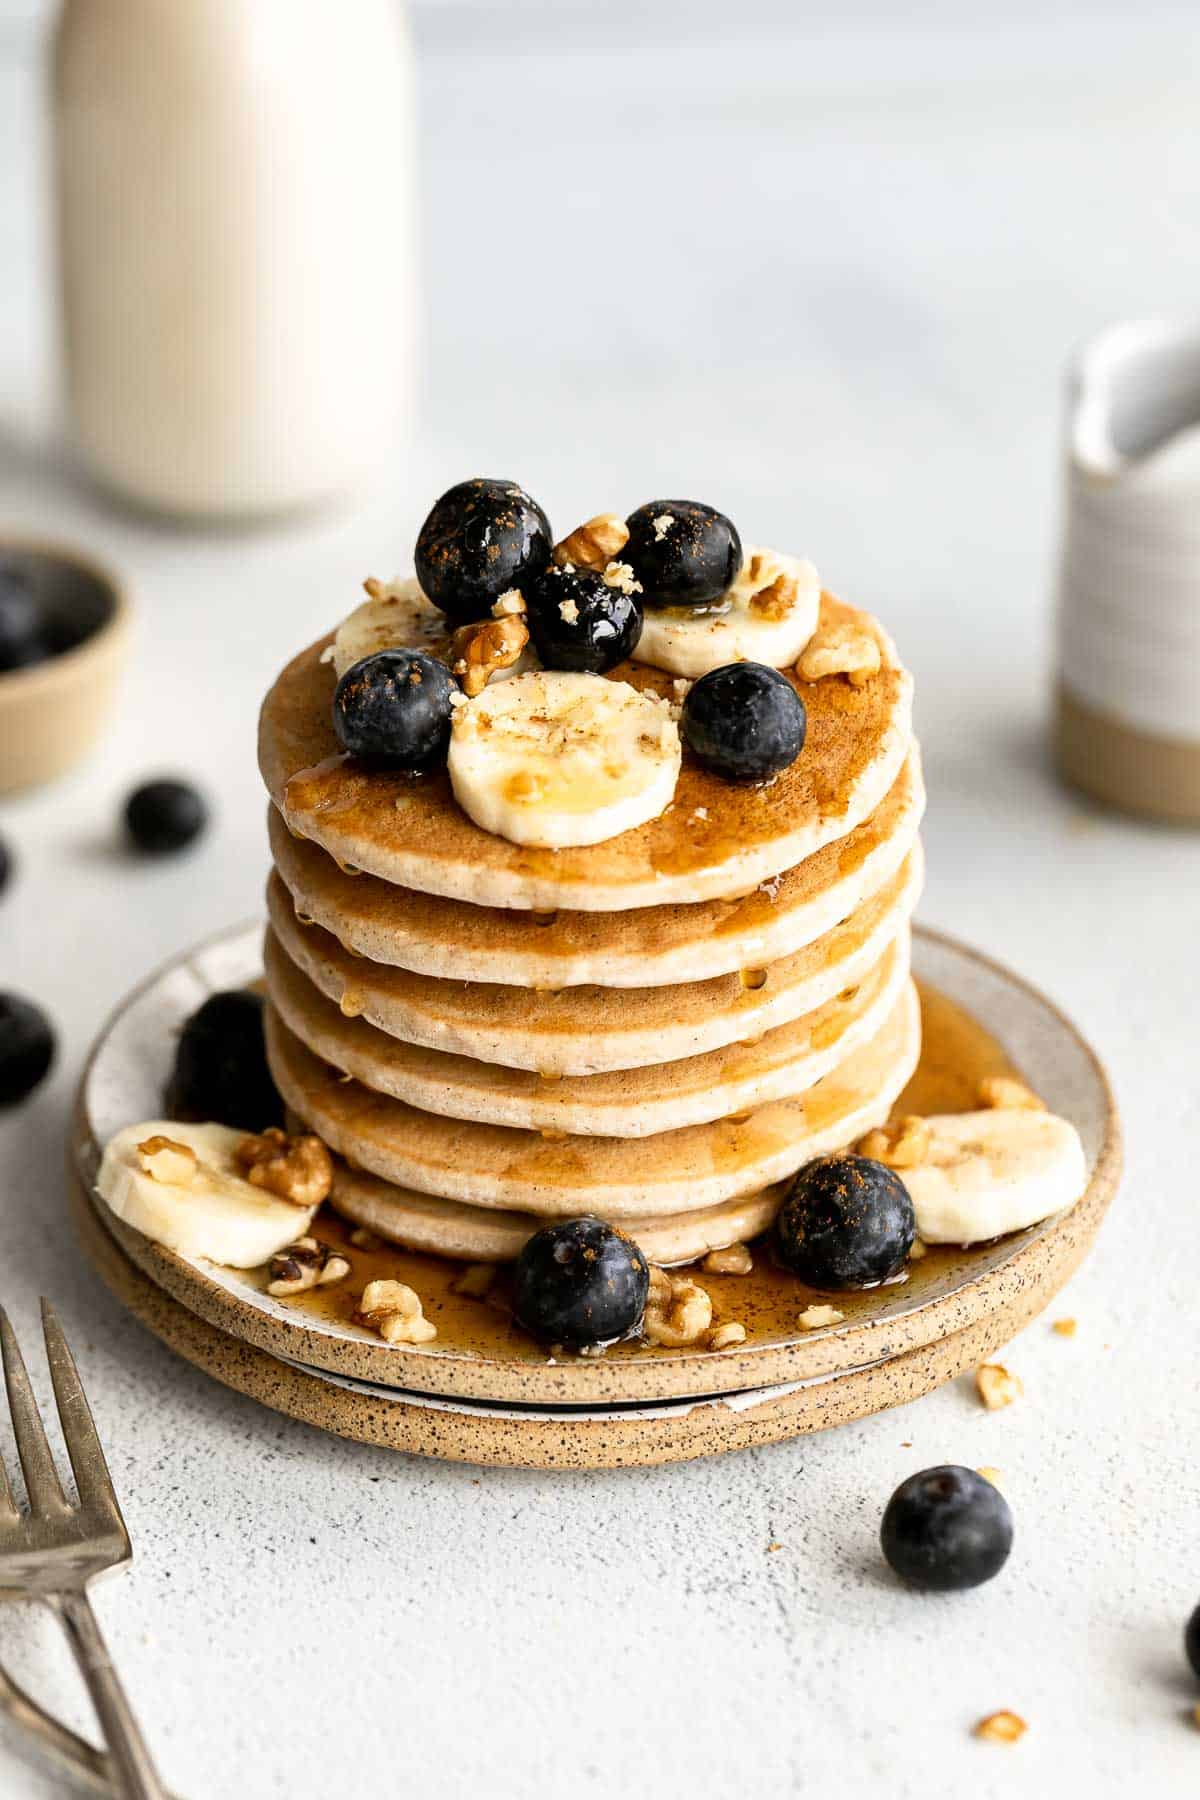 vegan buckwheat pancakes on a plate with berries and banana